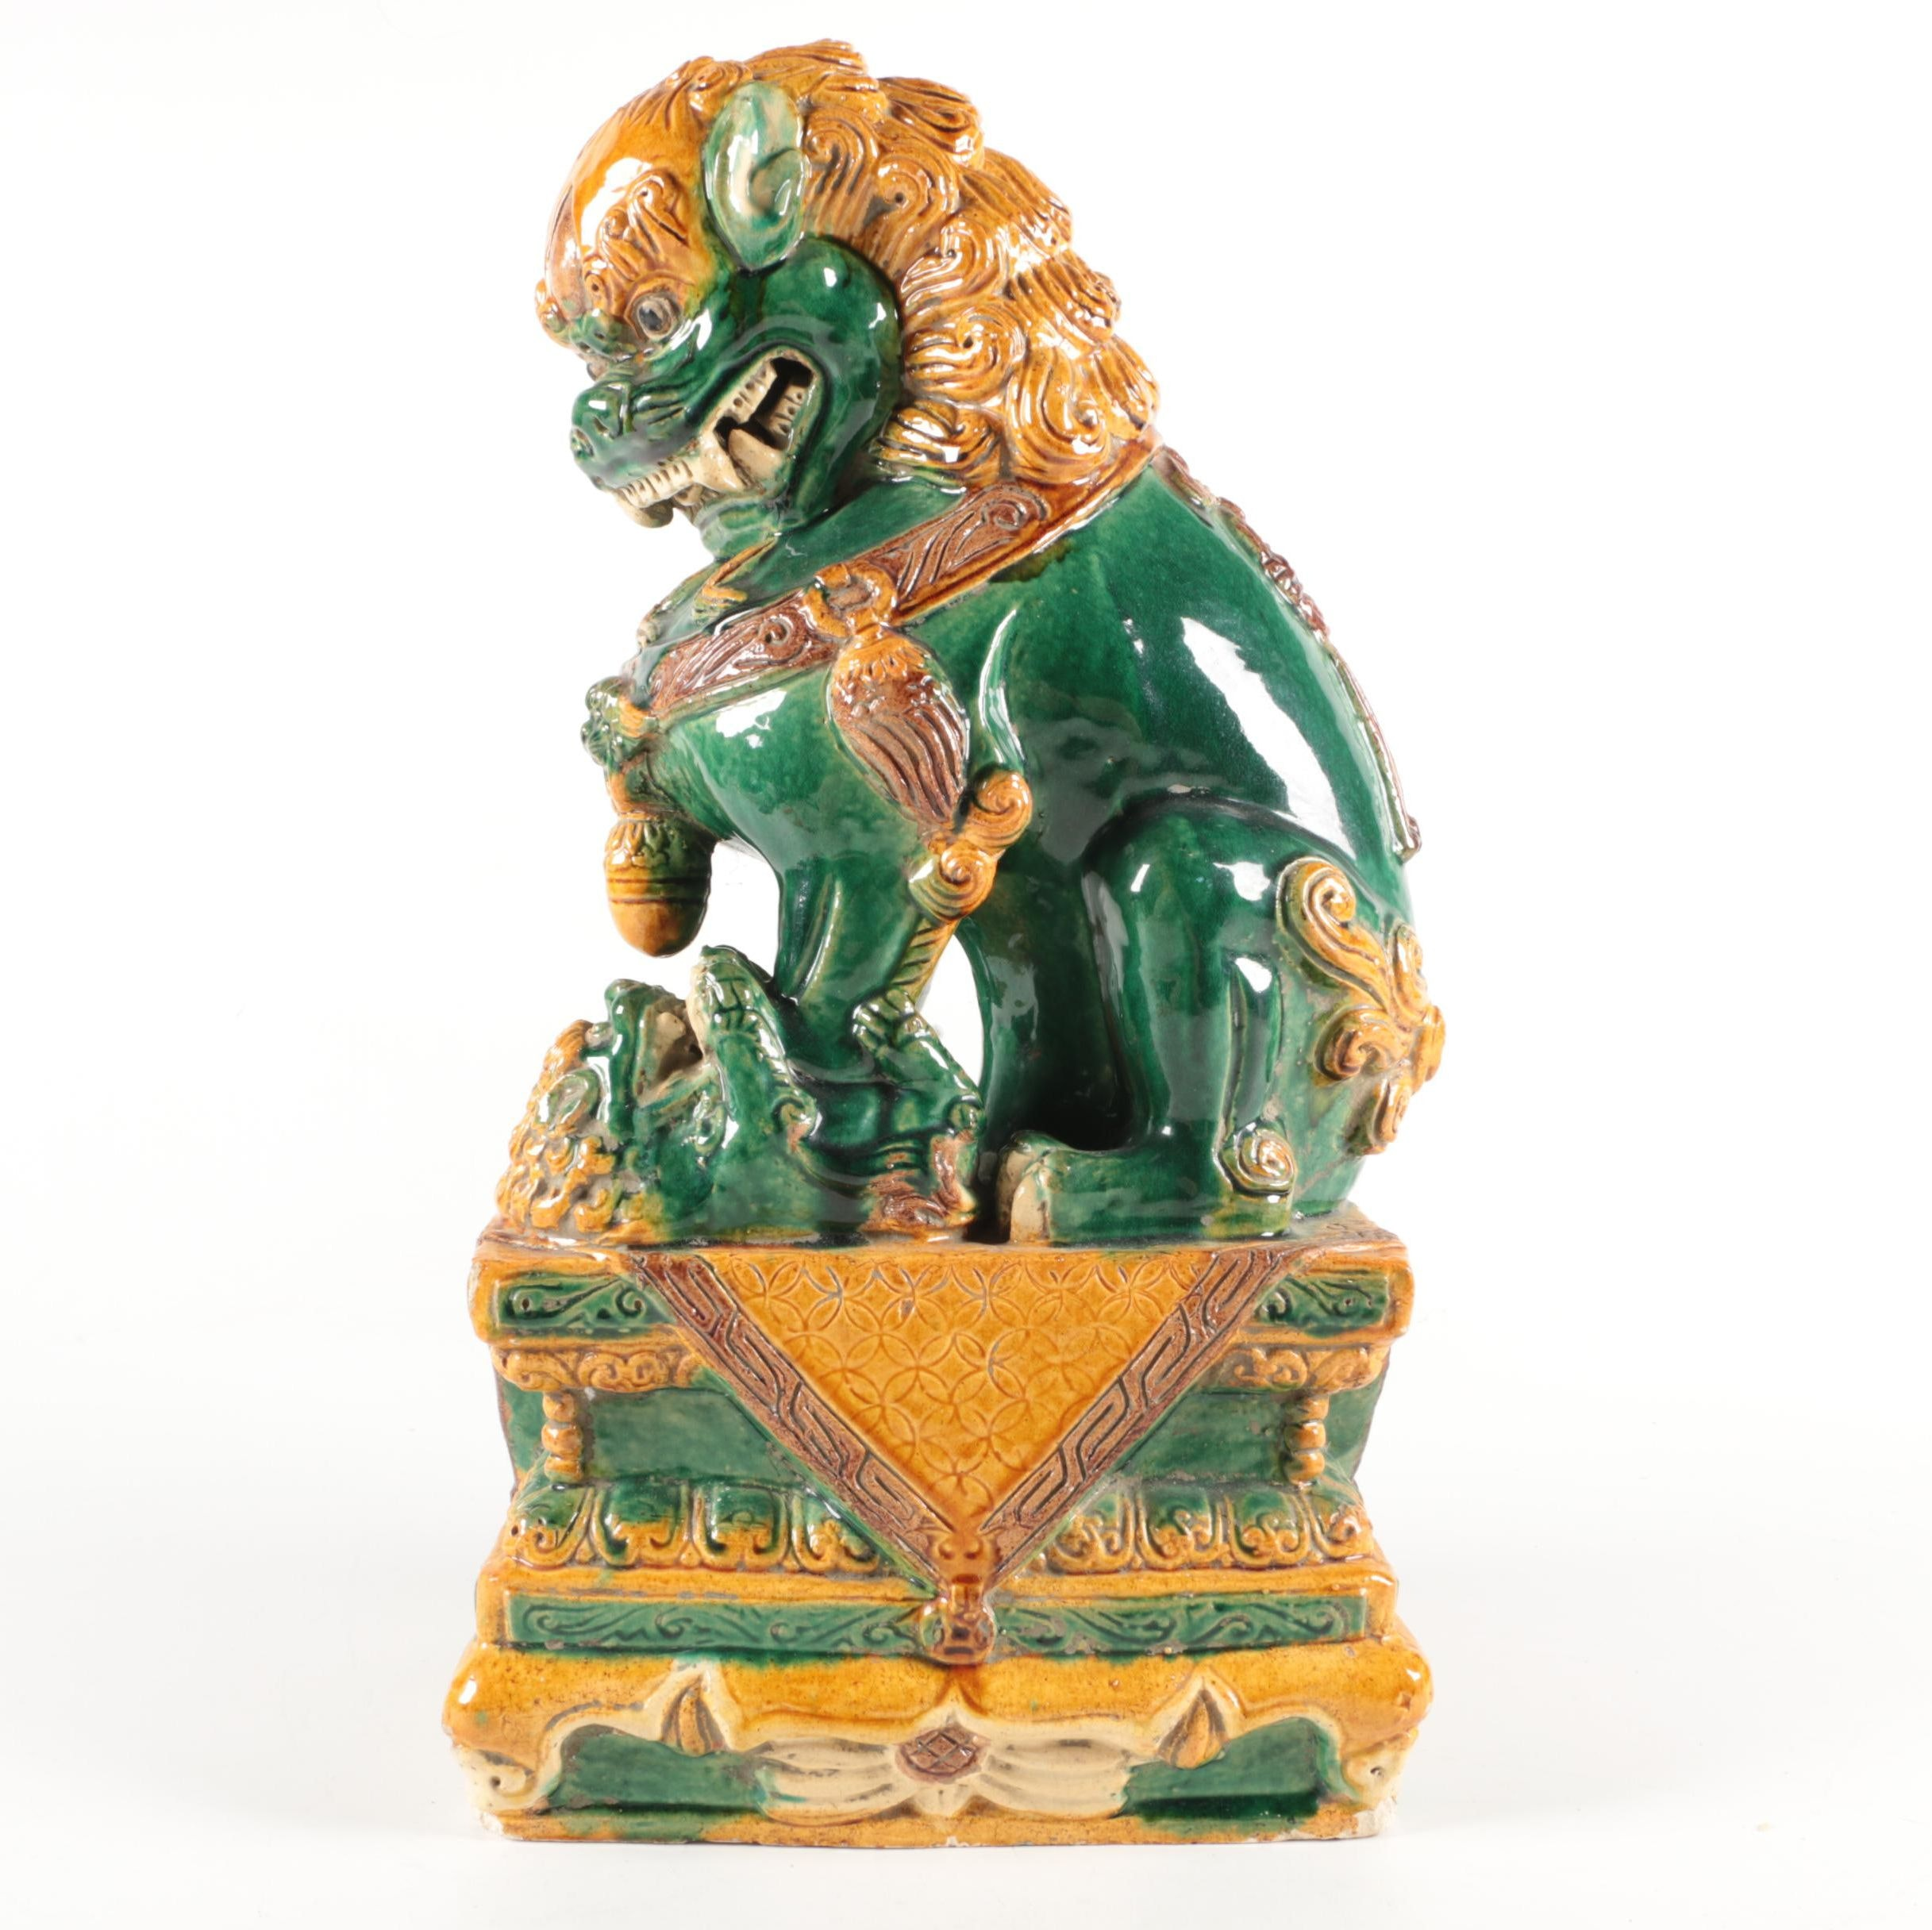 Chinoiserie Ceramic Figure of Green and Yellow Guardian Lion